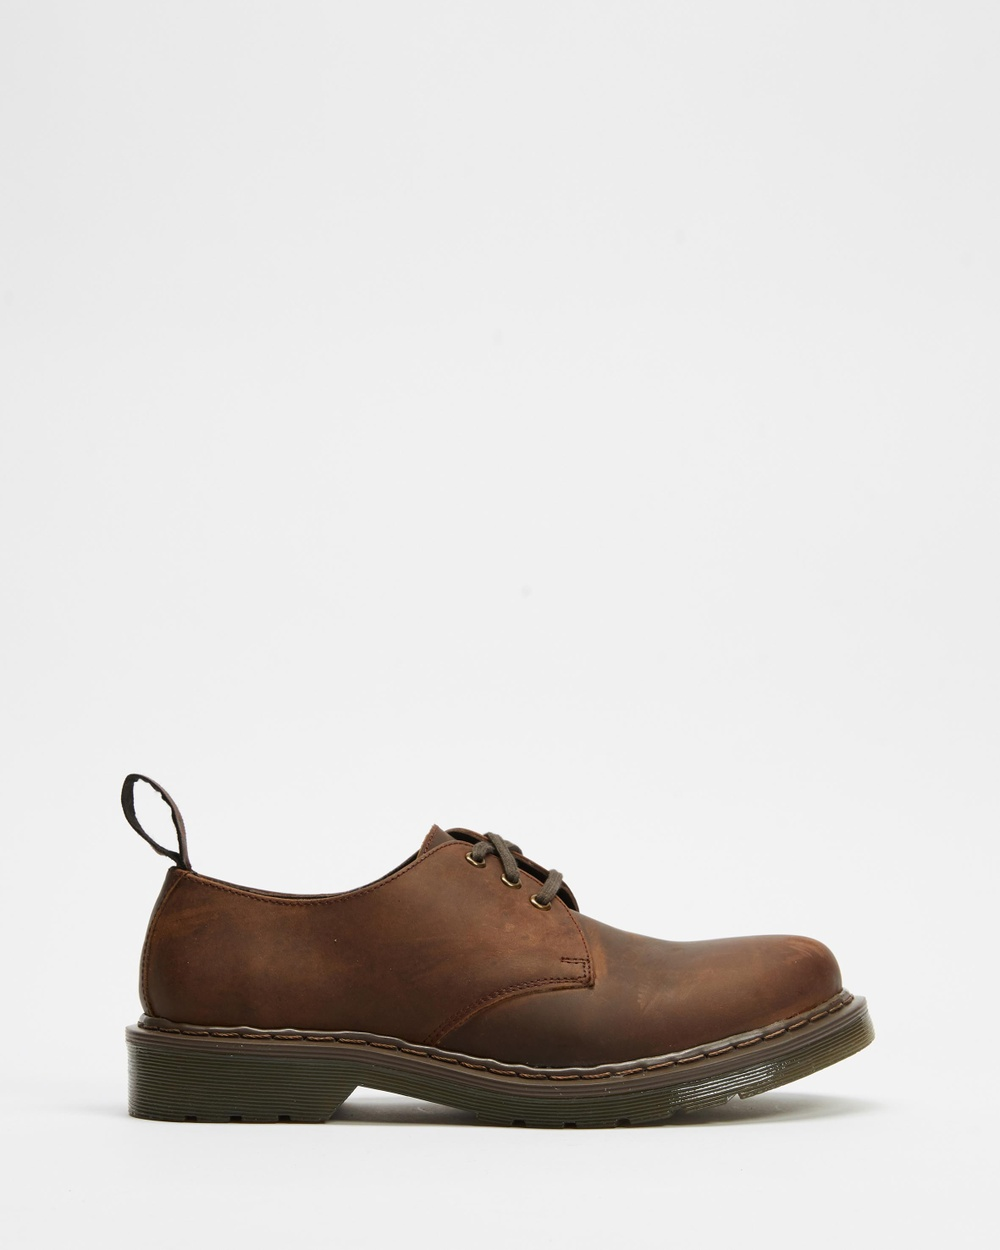 AERE Leather Shoes Dress Brown